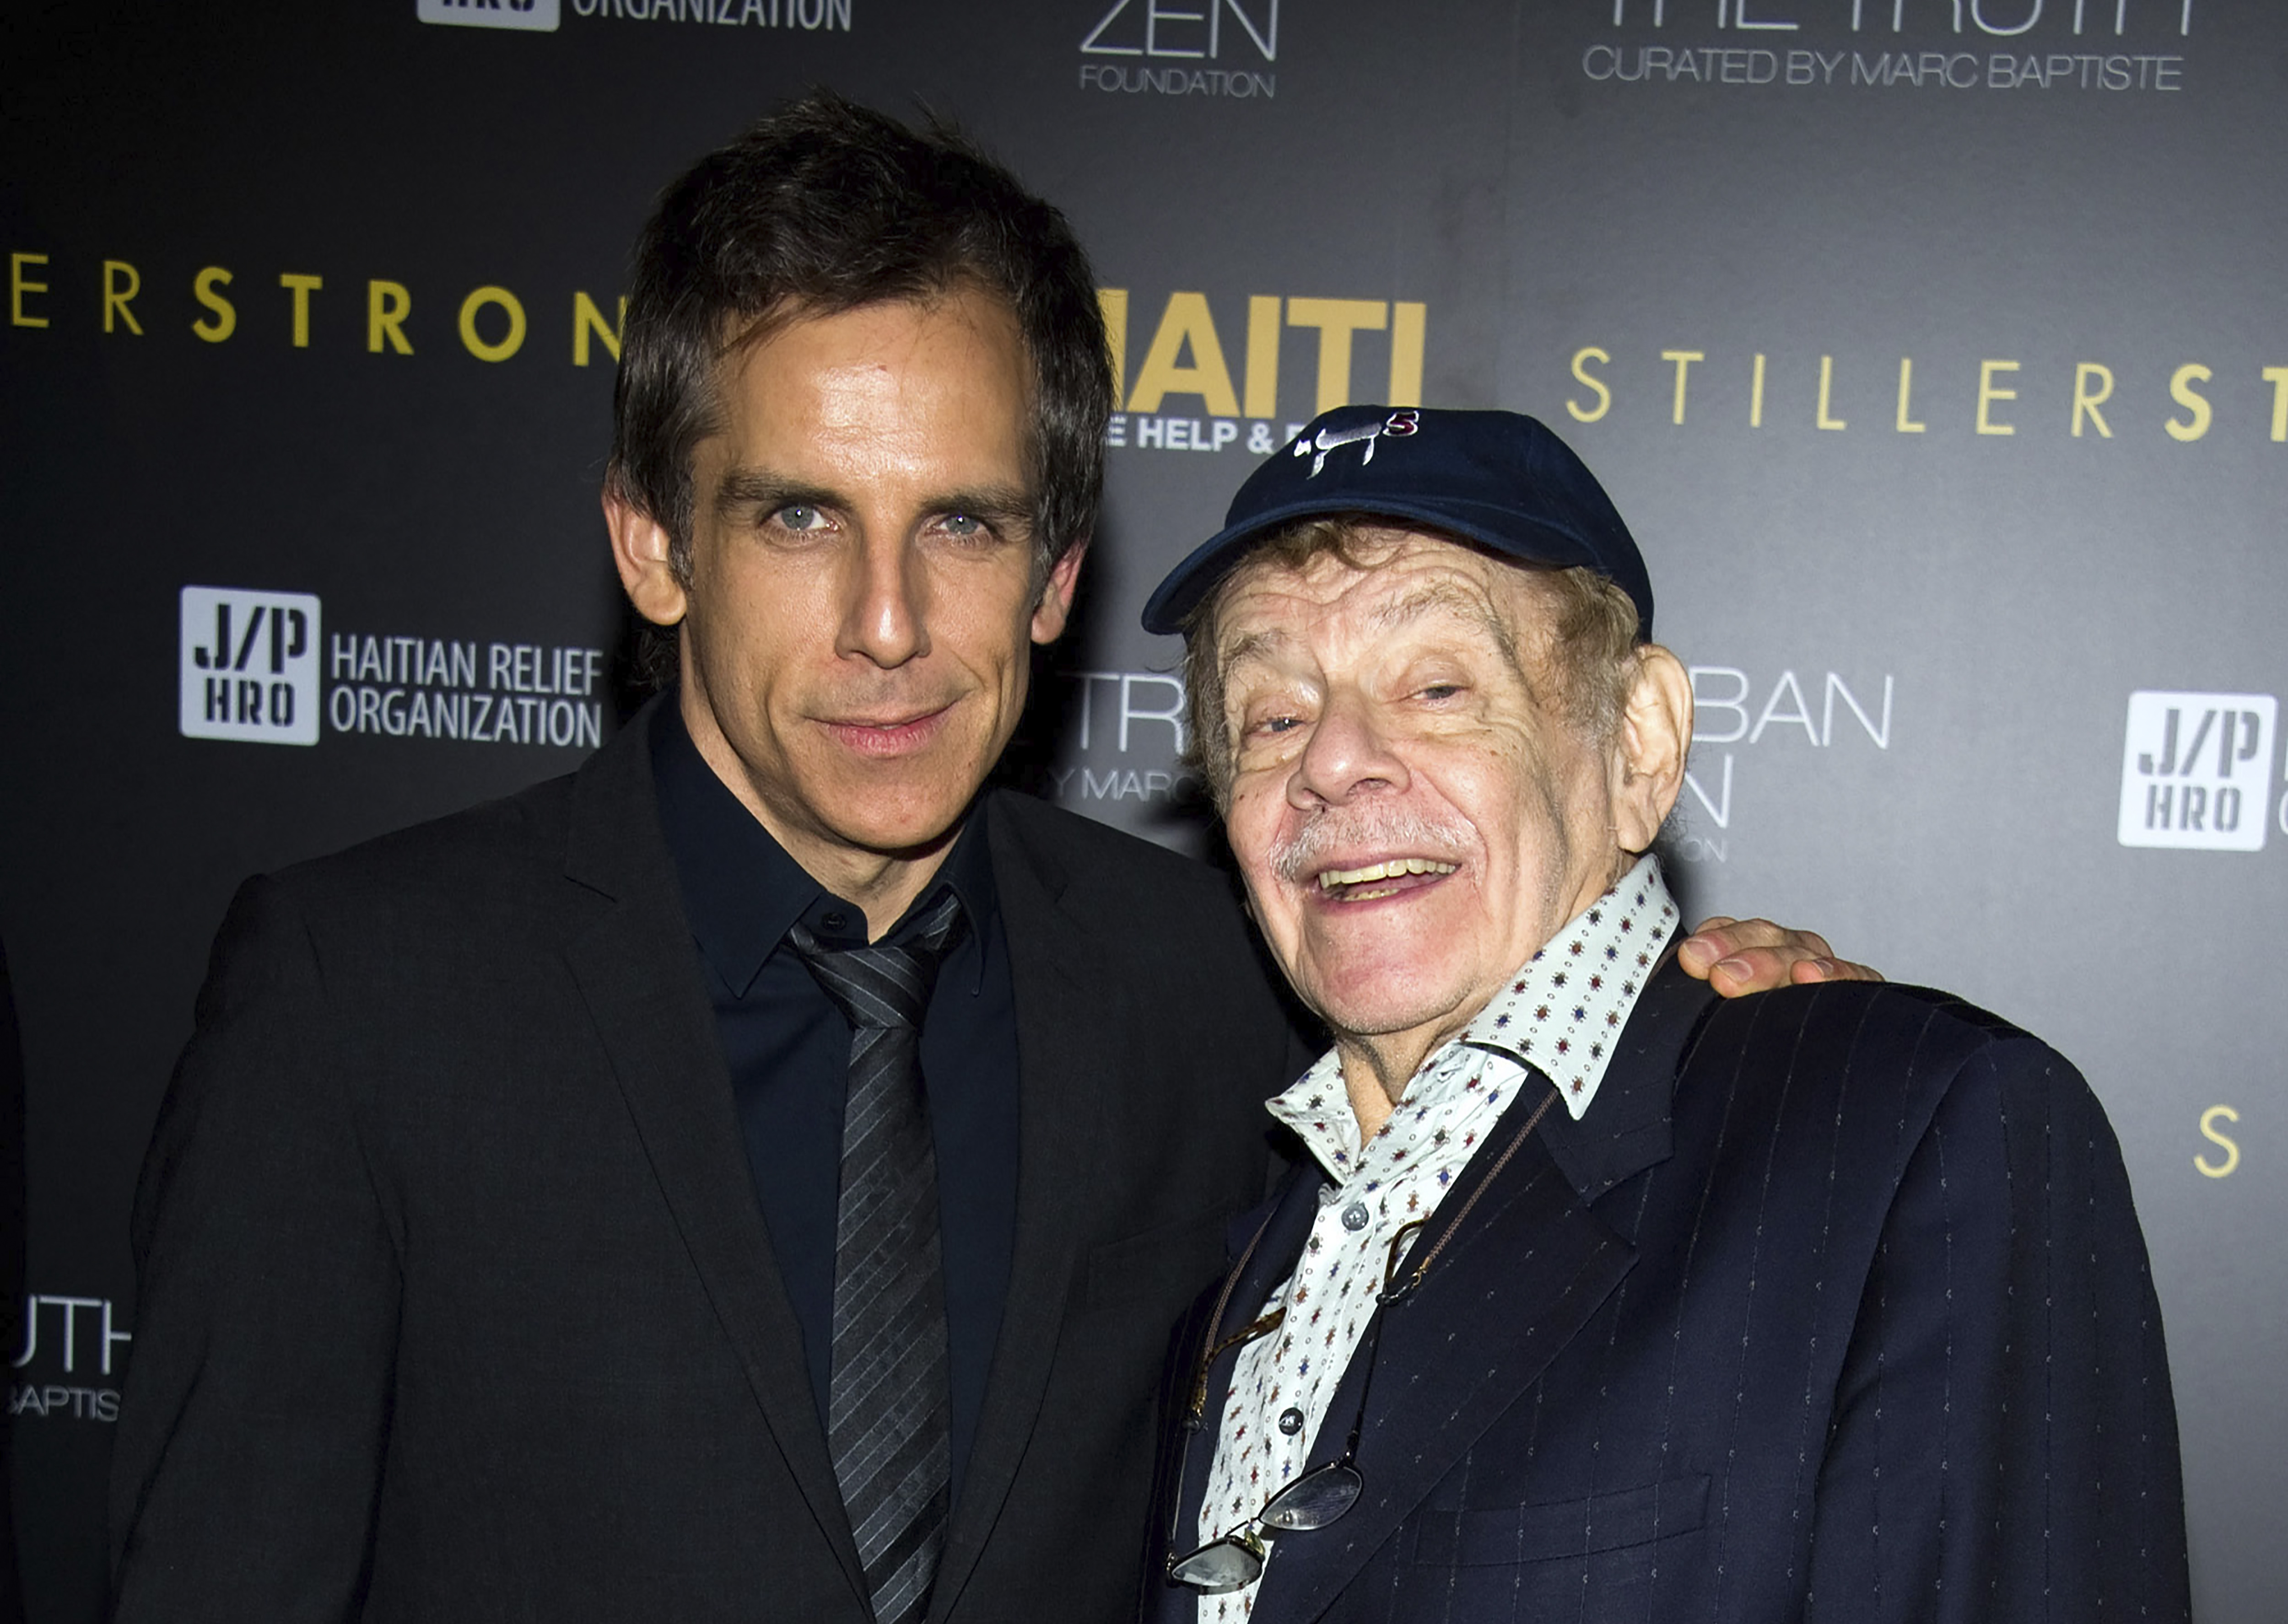 Jerry Stiller Comedian Who Played Crotchety Frank Costanza On Seinfeld Dies At 92